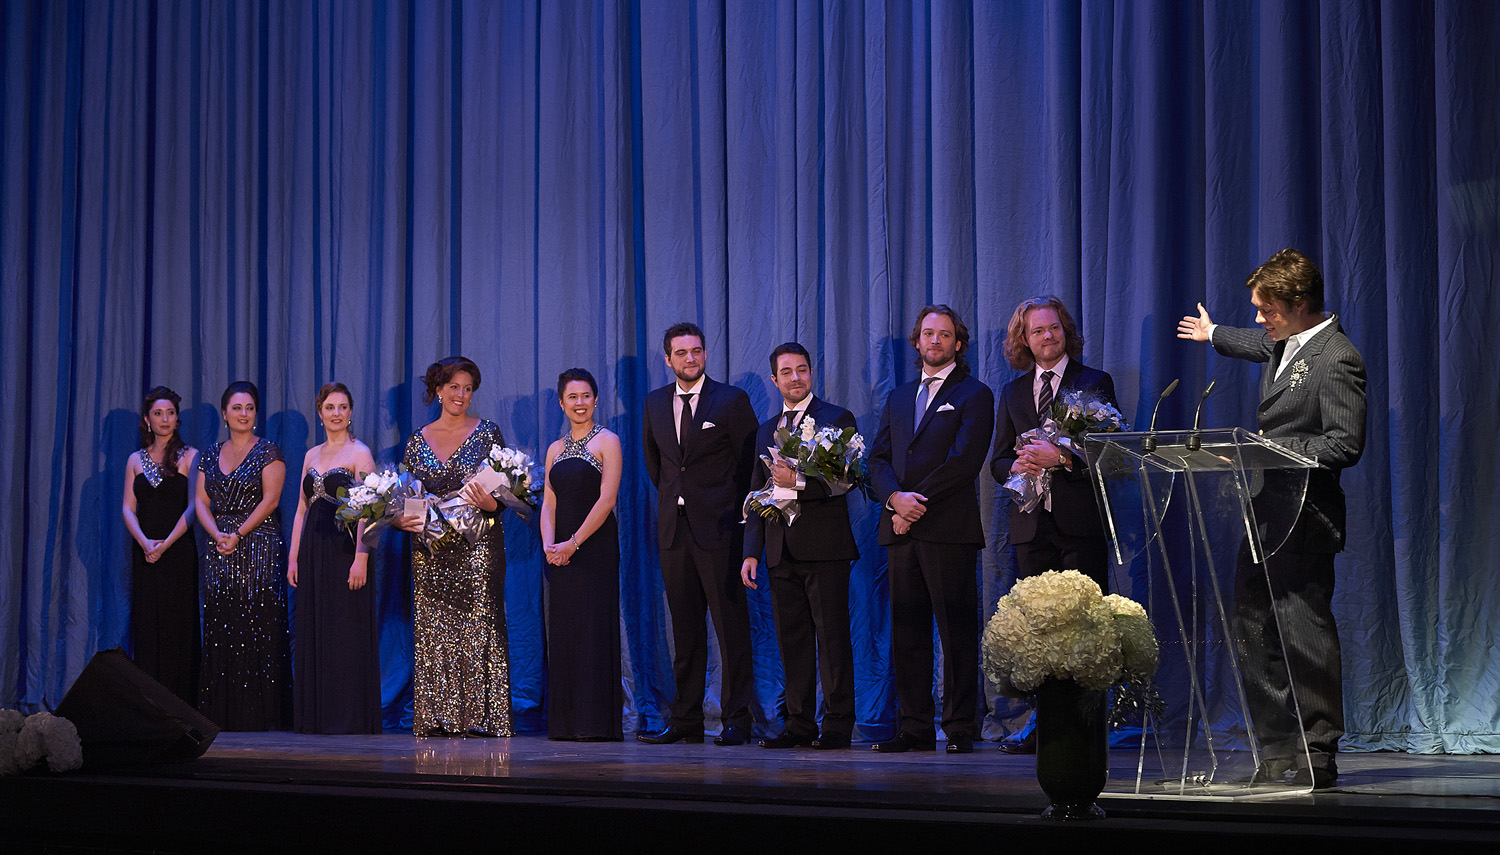 Ensemble Studio Competition finalists and winners with Centre Stage host Rufus Wainwright, 2013. Photo: Michael Cooper